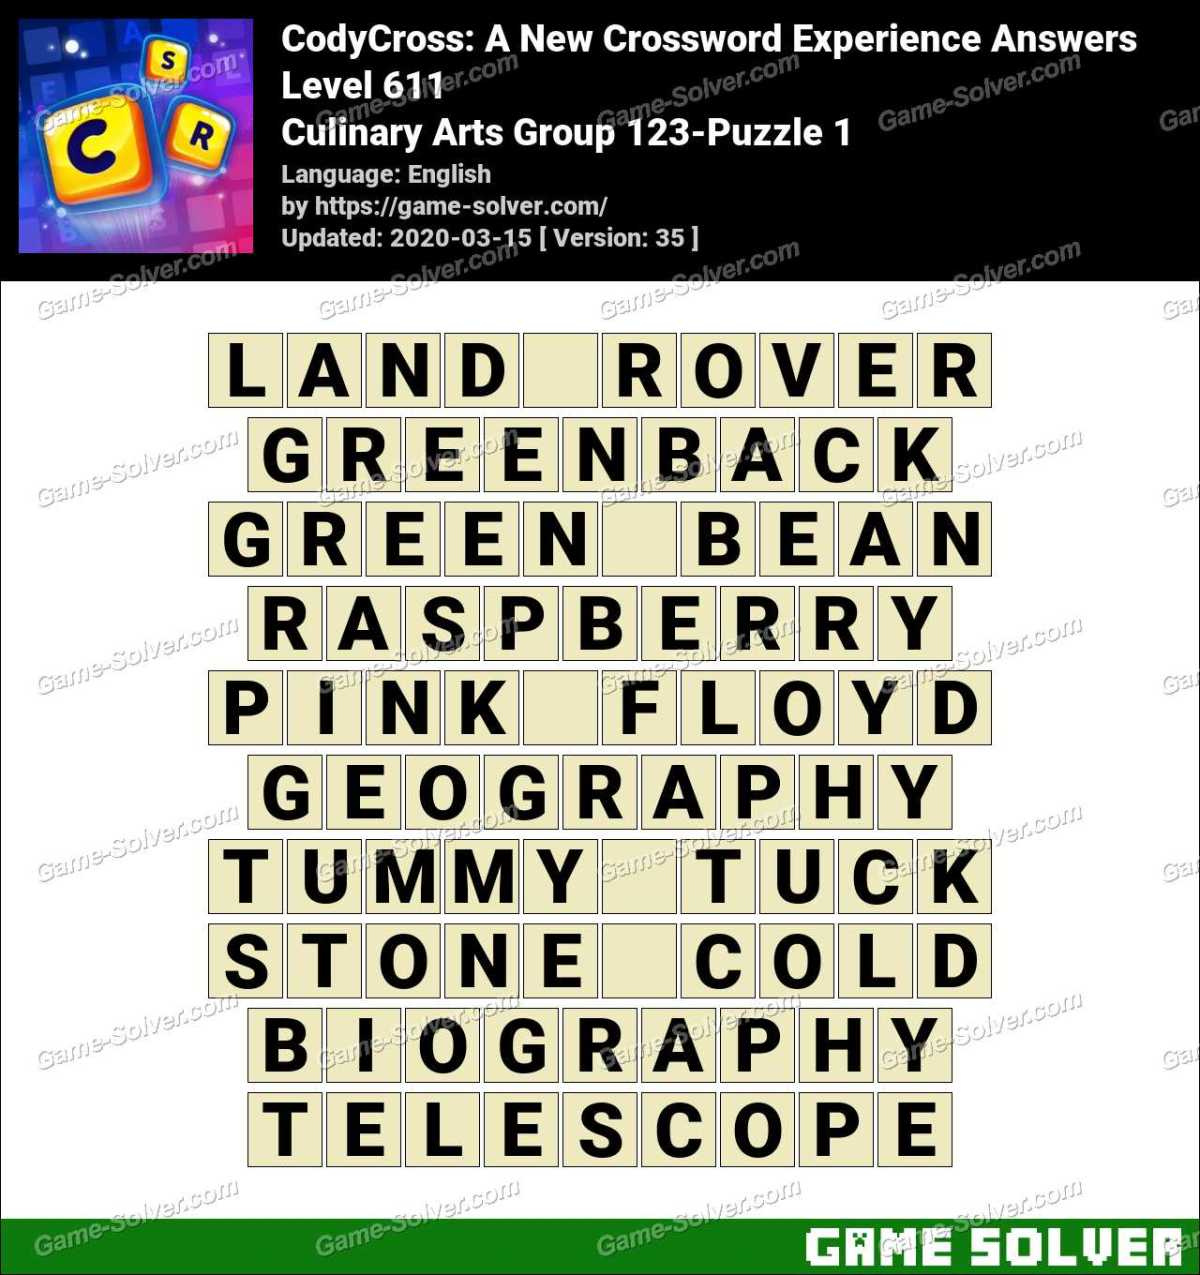 CodyCross Culinary Arts Group 123-Puzzle 1 Answers